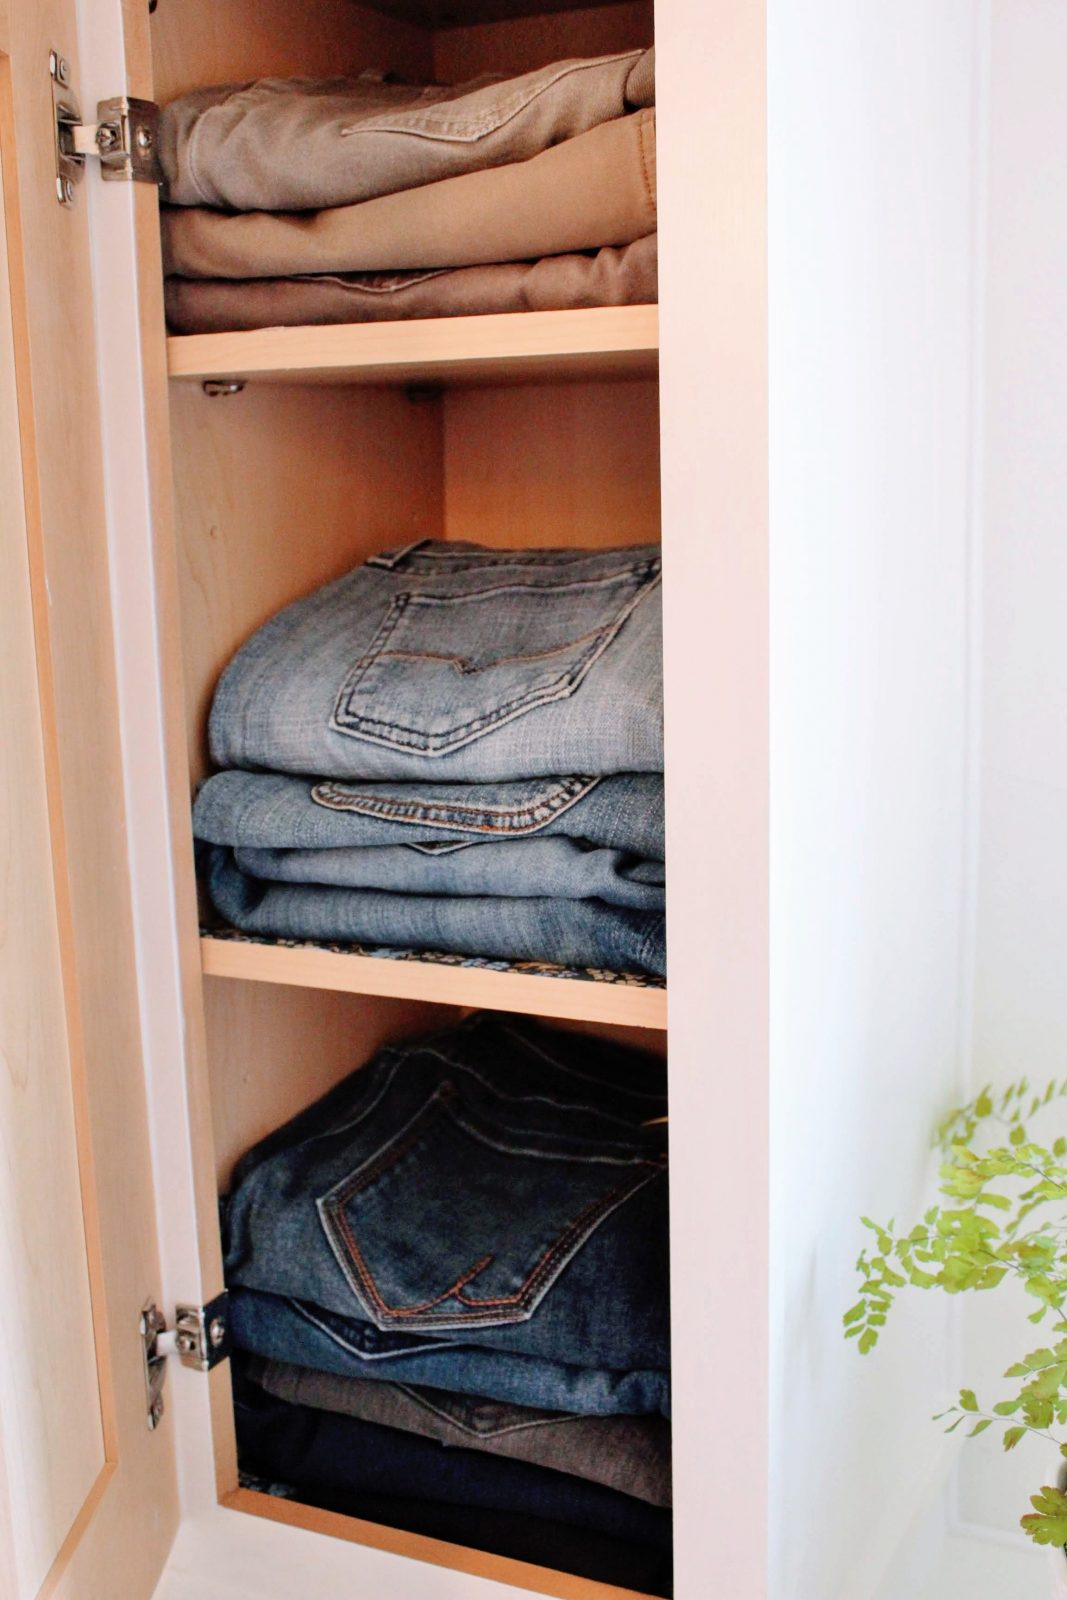 organizing jeans